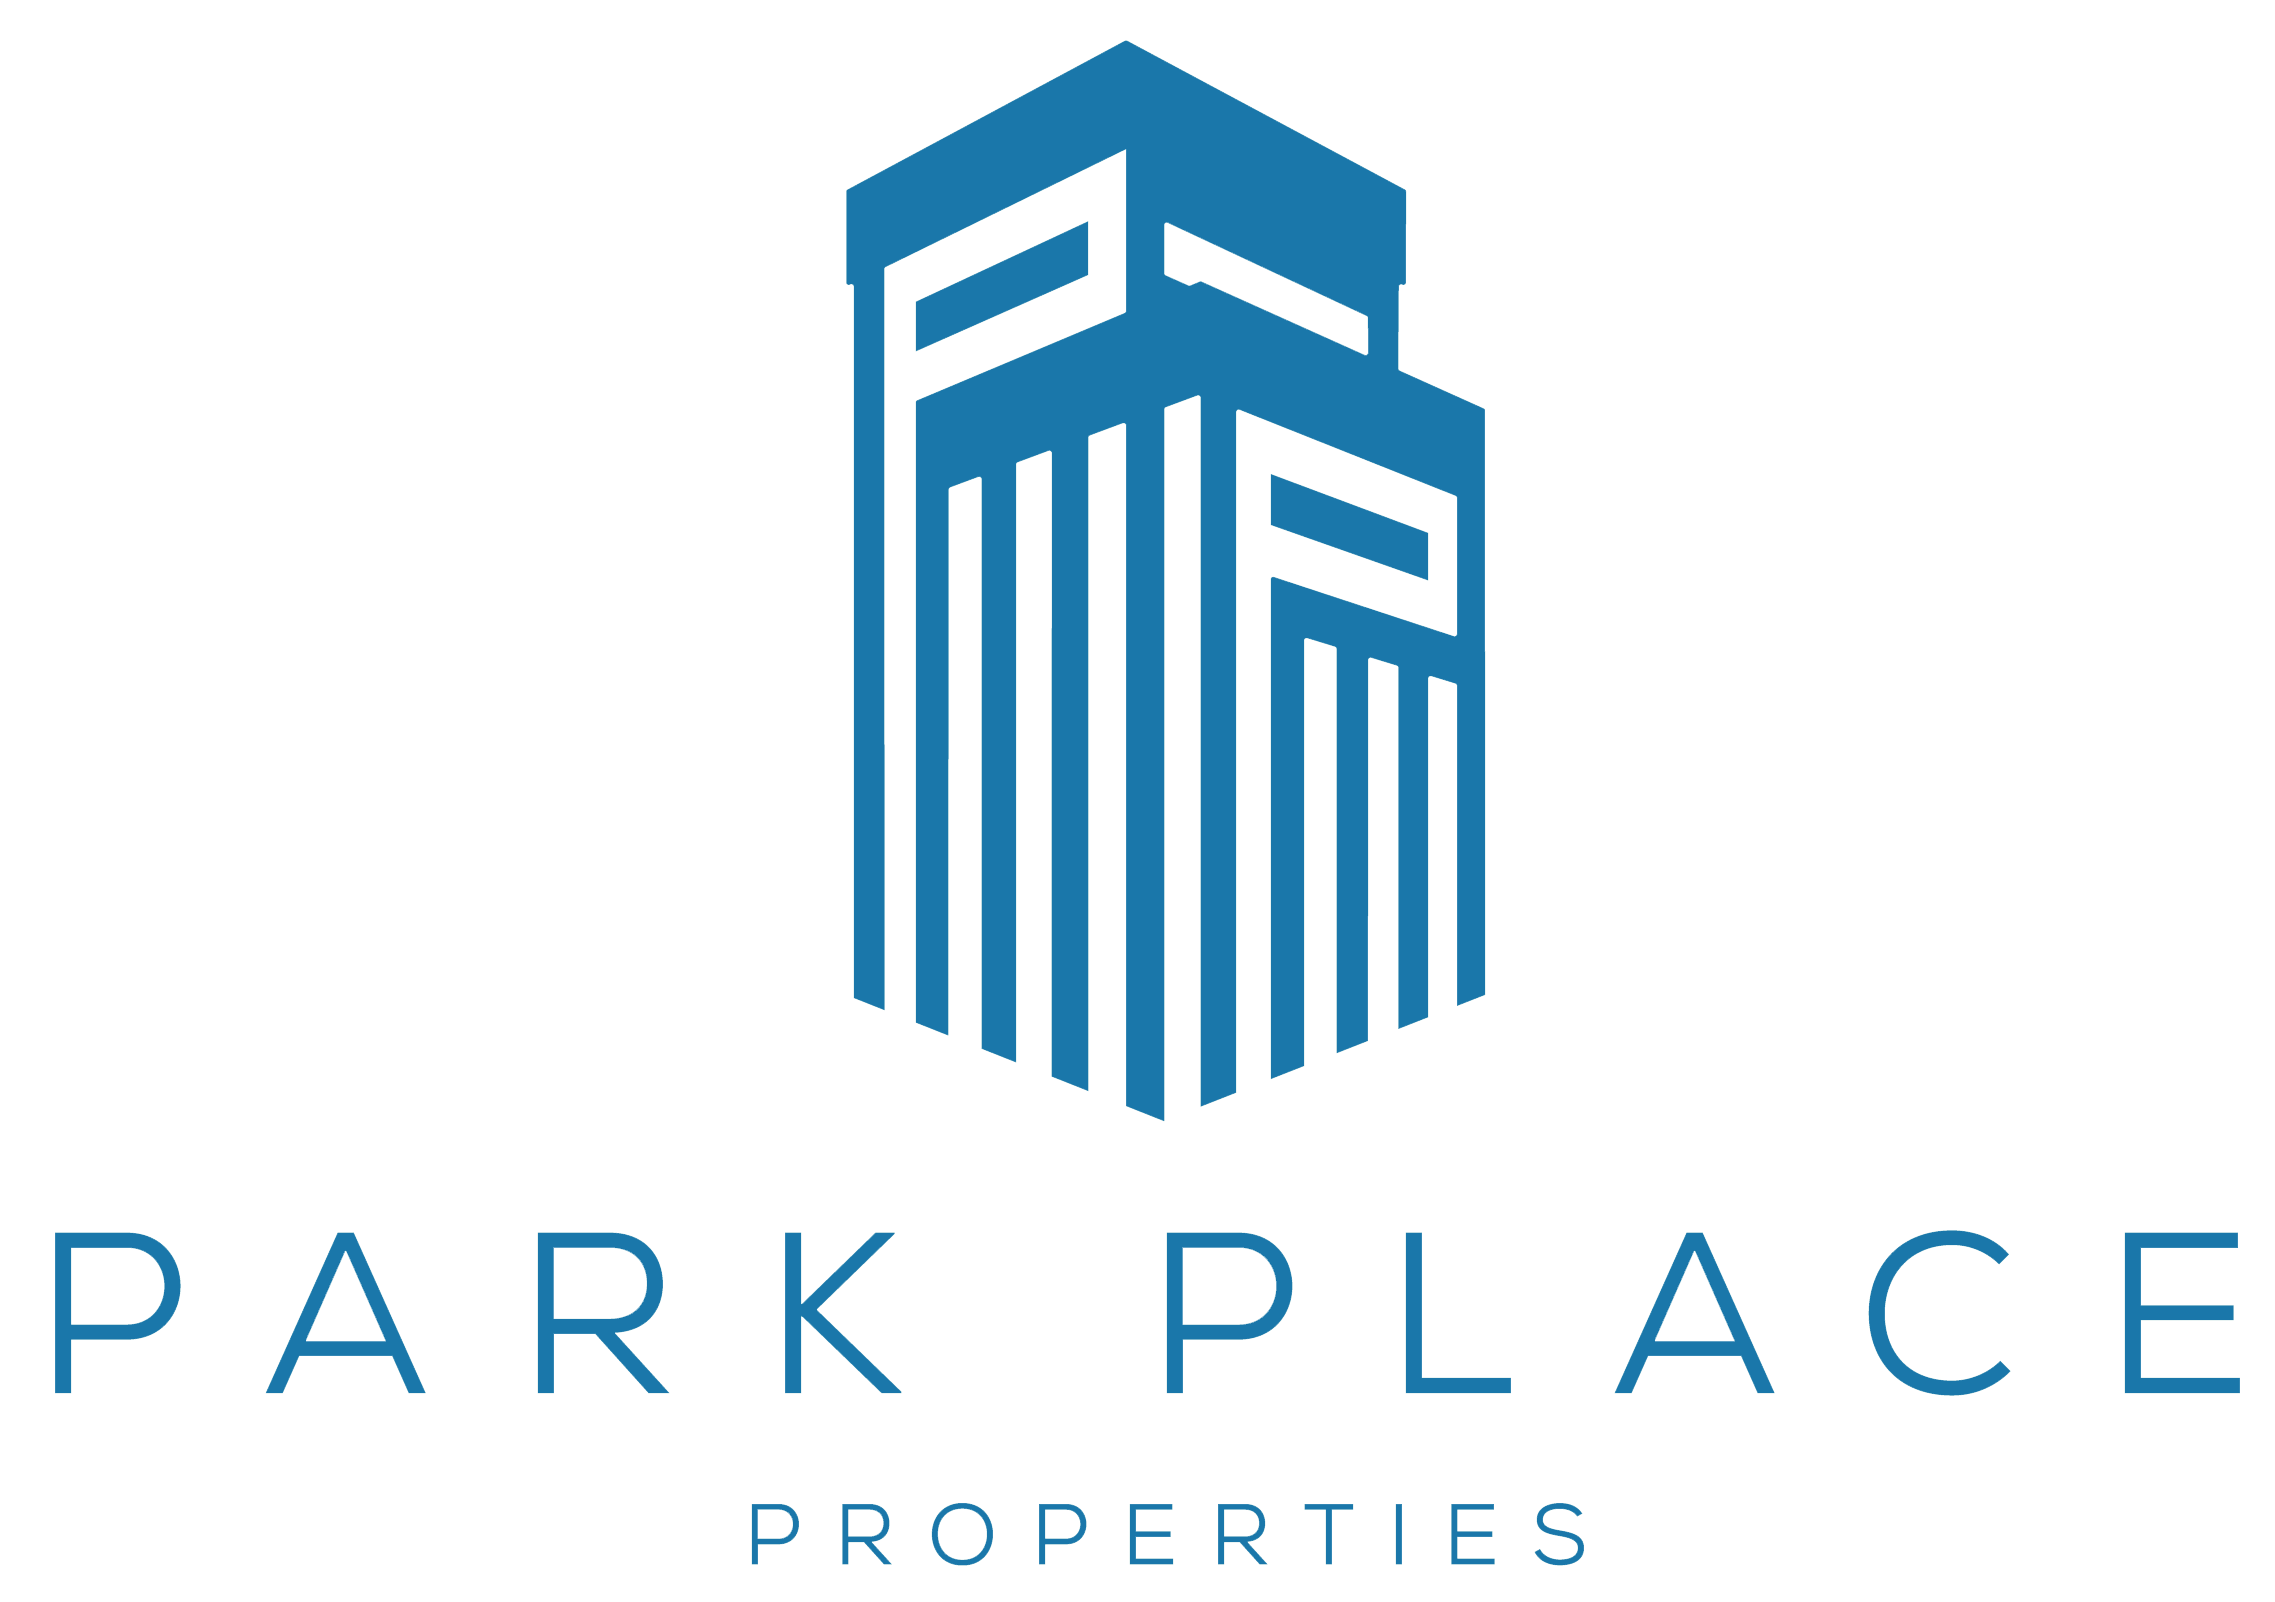 Park Place Properties Phoenix Property Management Provides Solutions for Airbnb and Short-Term Rentals in Phoenix, Arizona